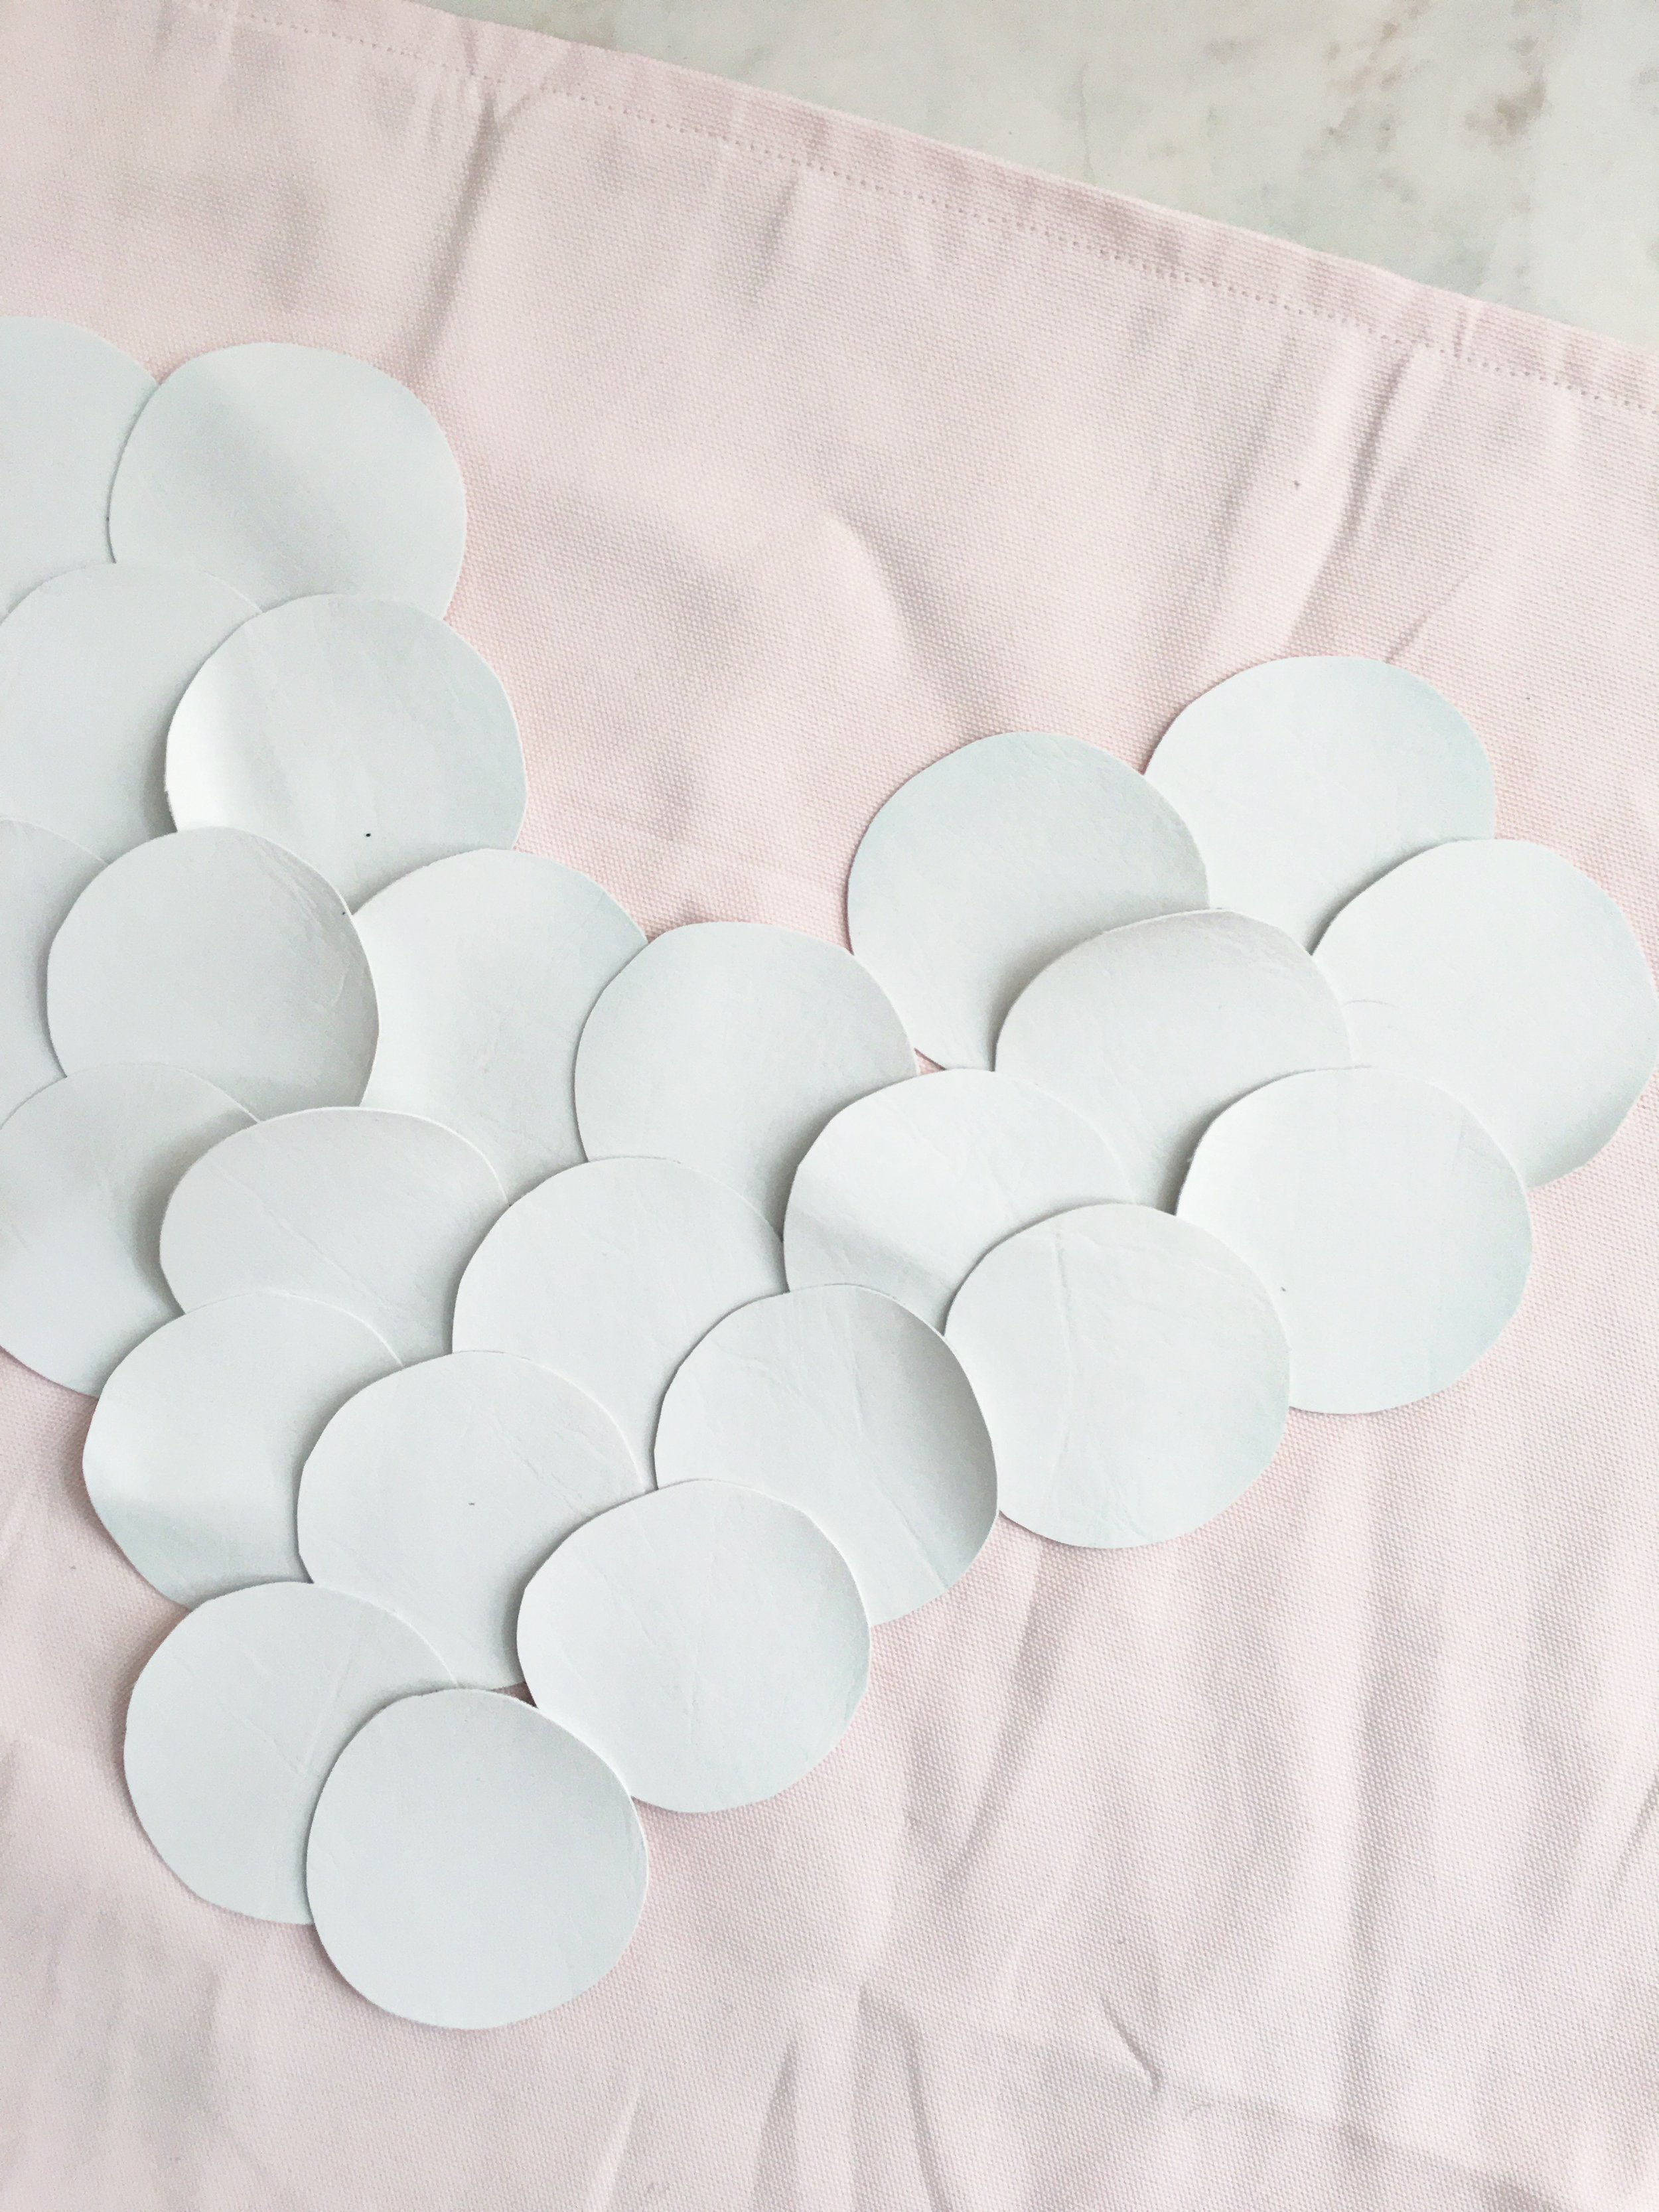 STEP TWO - Lay your circles on your pillowcase to get an idea of layout & if you will need anymore circles.Row 1 - 2 (Top of the Heart)Row 2 - 3Row 3 - 6Row 4 - 5Row 5 - 4Row 6 - 2Row 7 - 1 (Bottom of Heart)